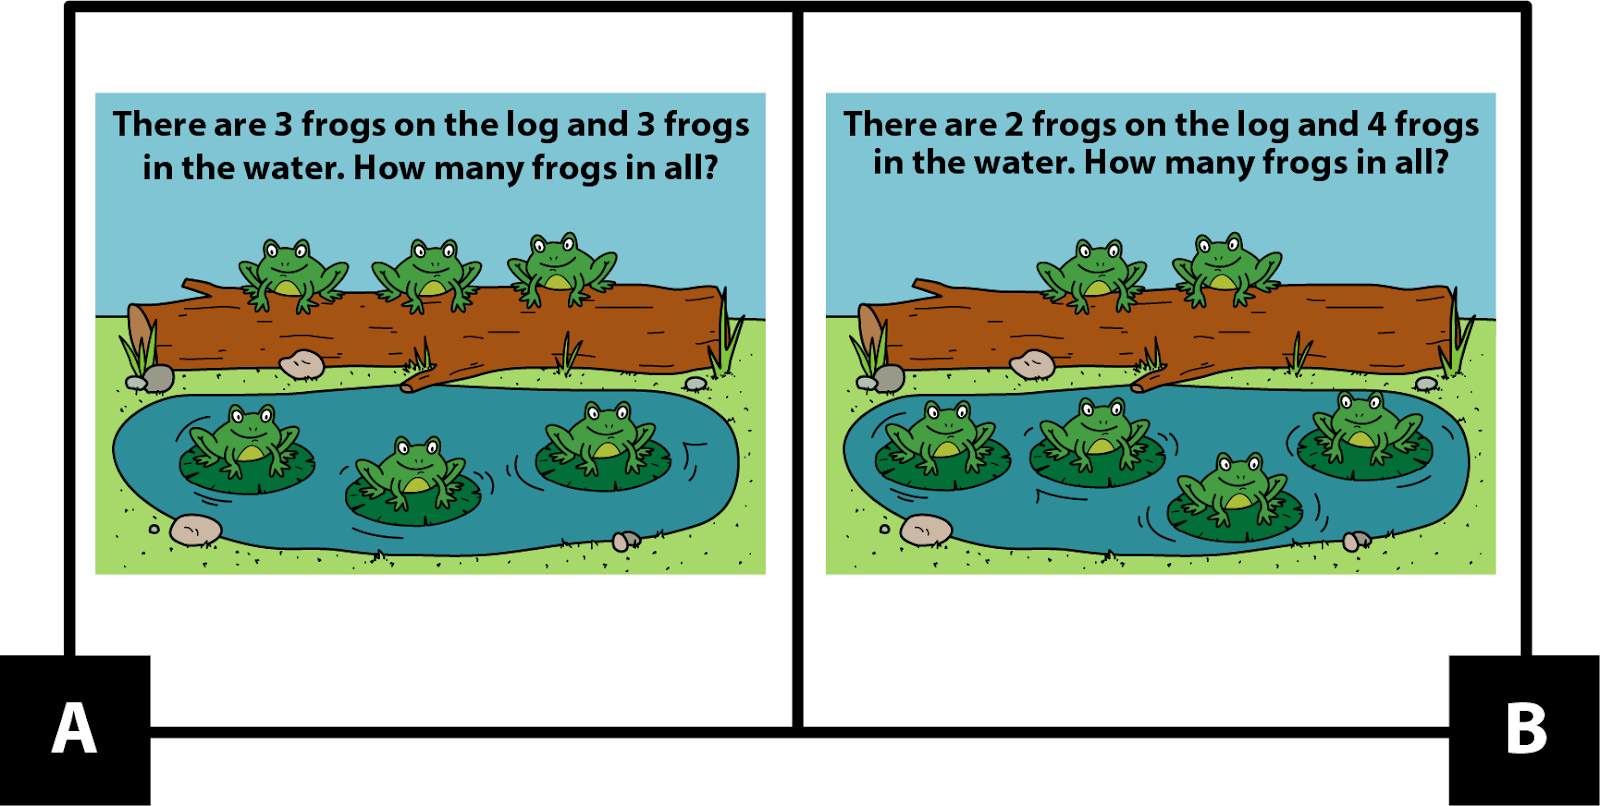 A: There are 3 frogs on the log and 3 frogs in the water. How many frogs in all? B: There are 2 frogs on the log and 4 frogs in the water. How many frogs in all?